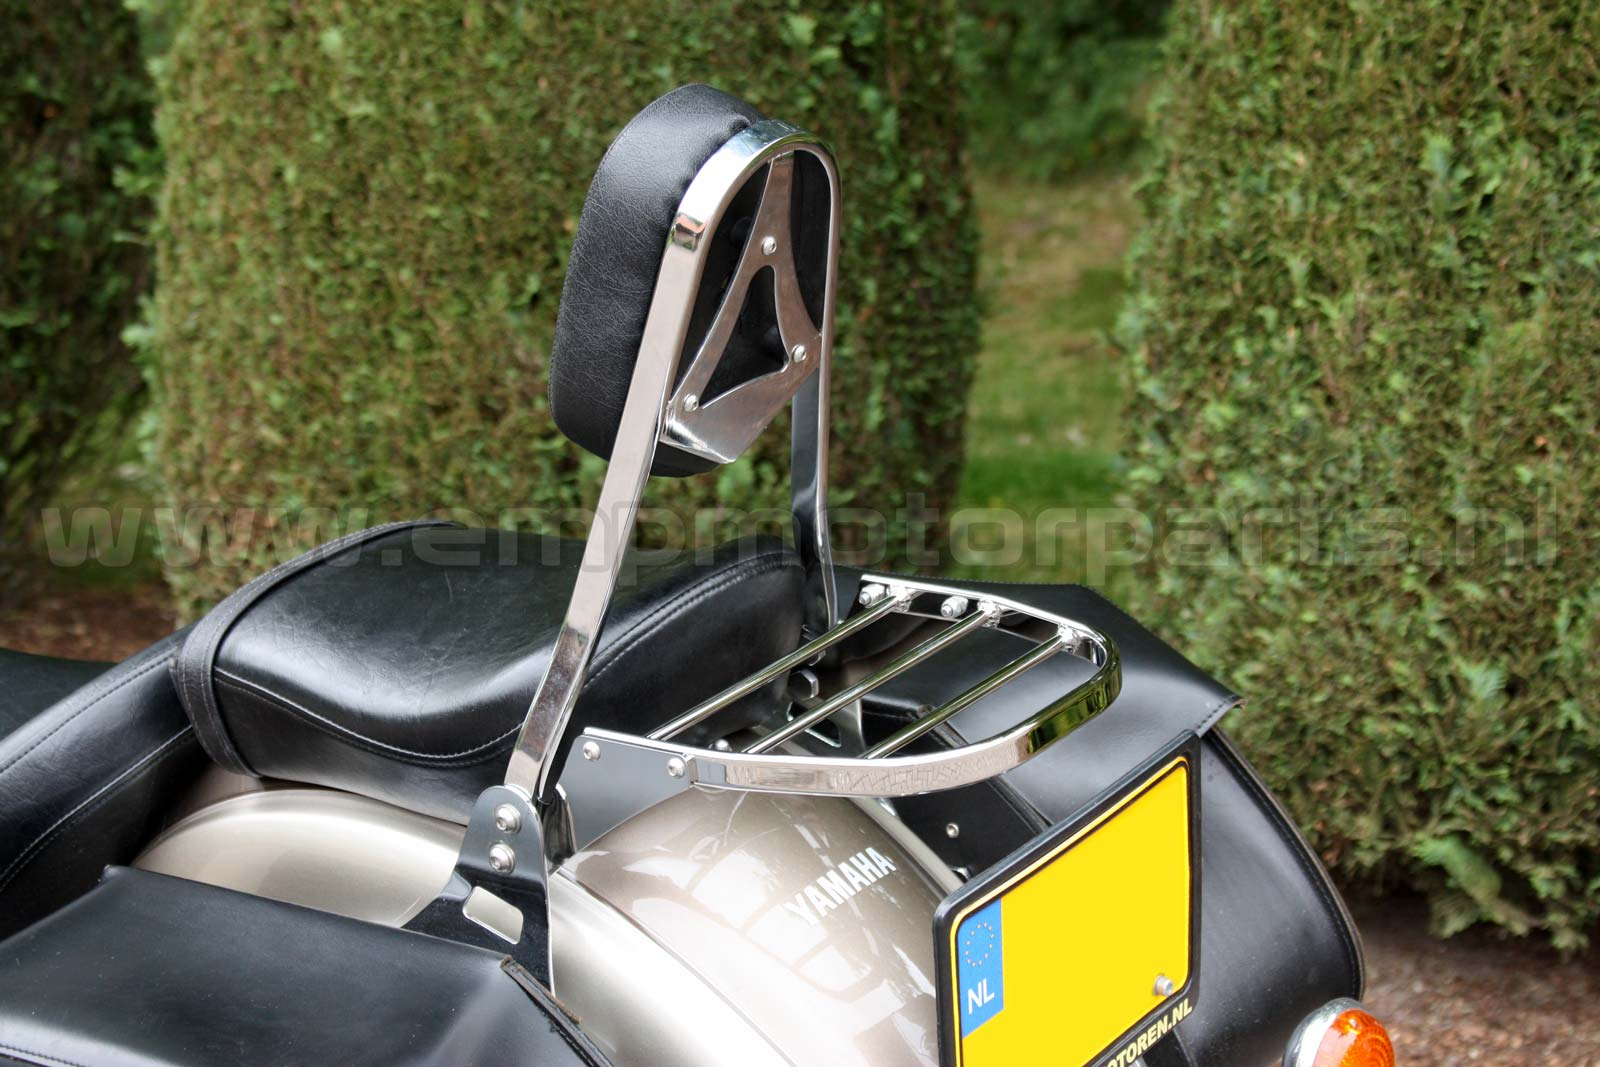 Bagagedrager universeel Luggage carrier, suitable for an model sissy bar as on the picture. (1)